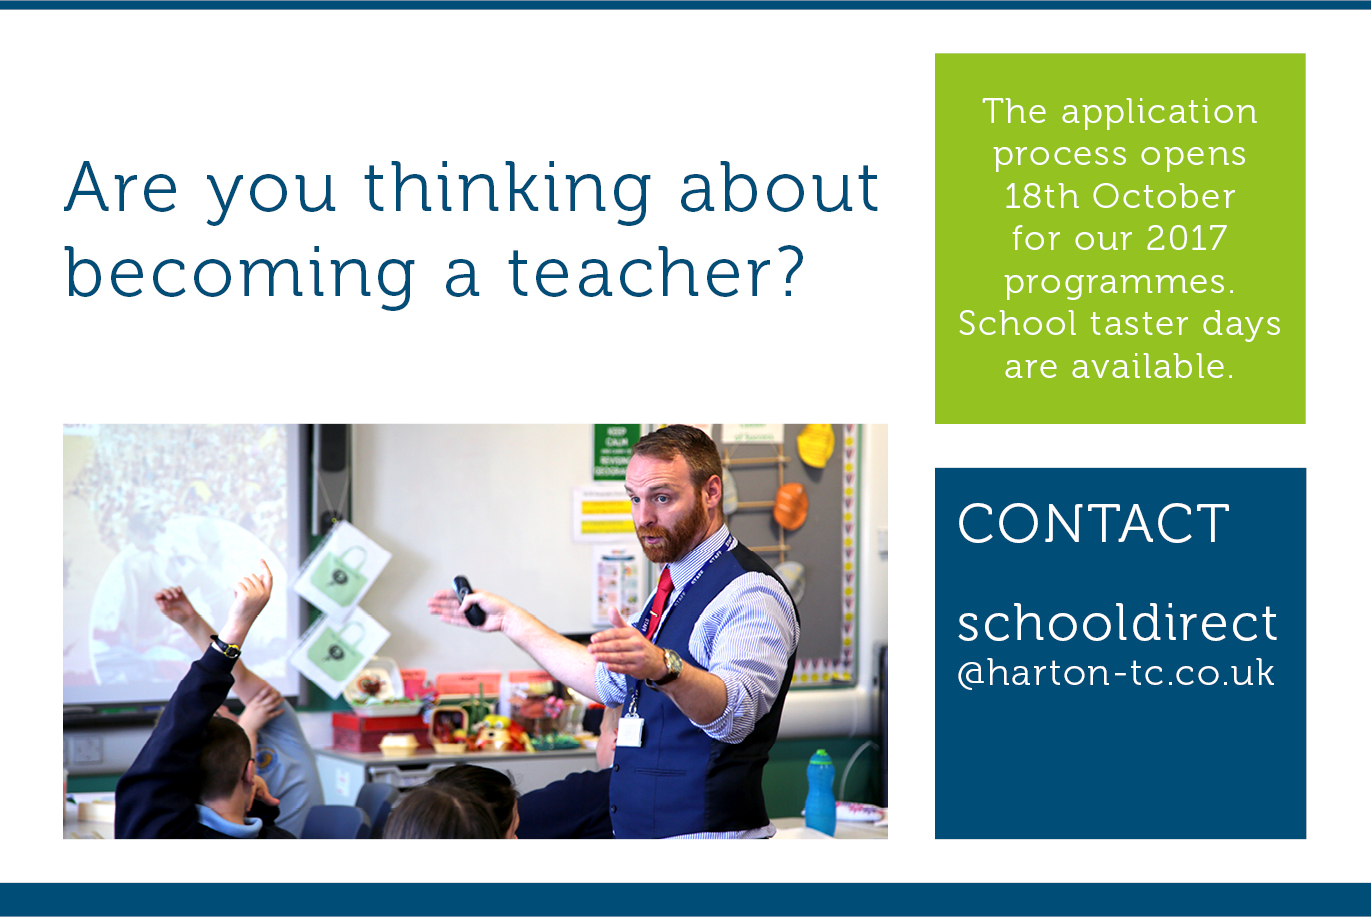 are-you-thinking-about-becoming-a-teacher